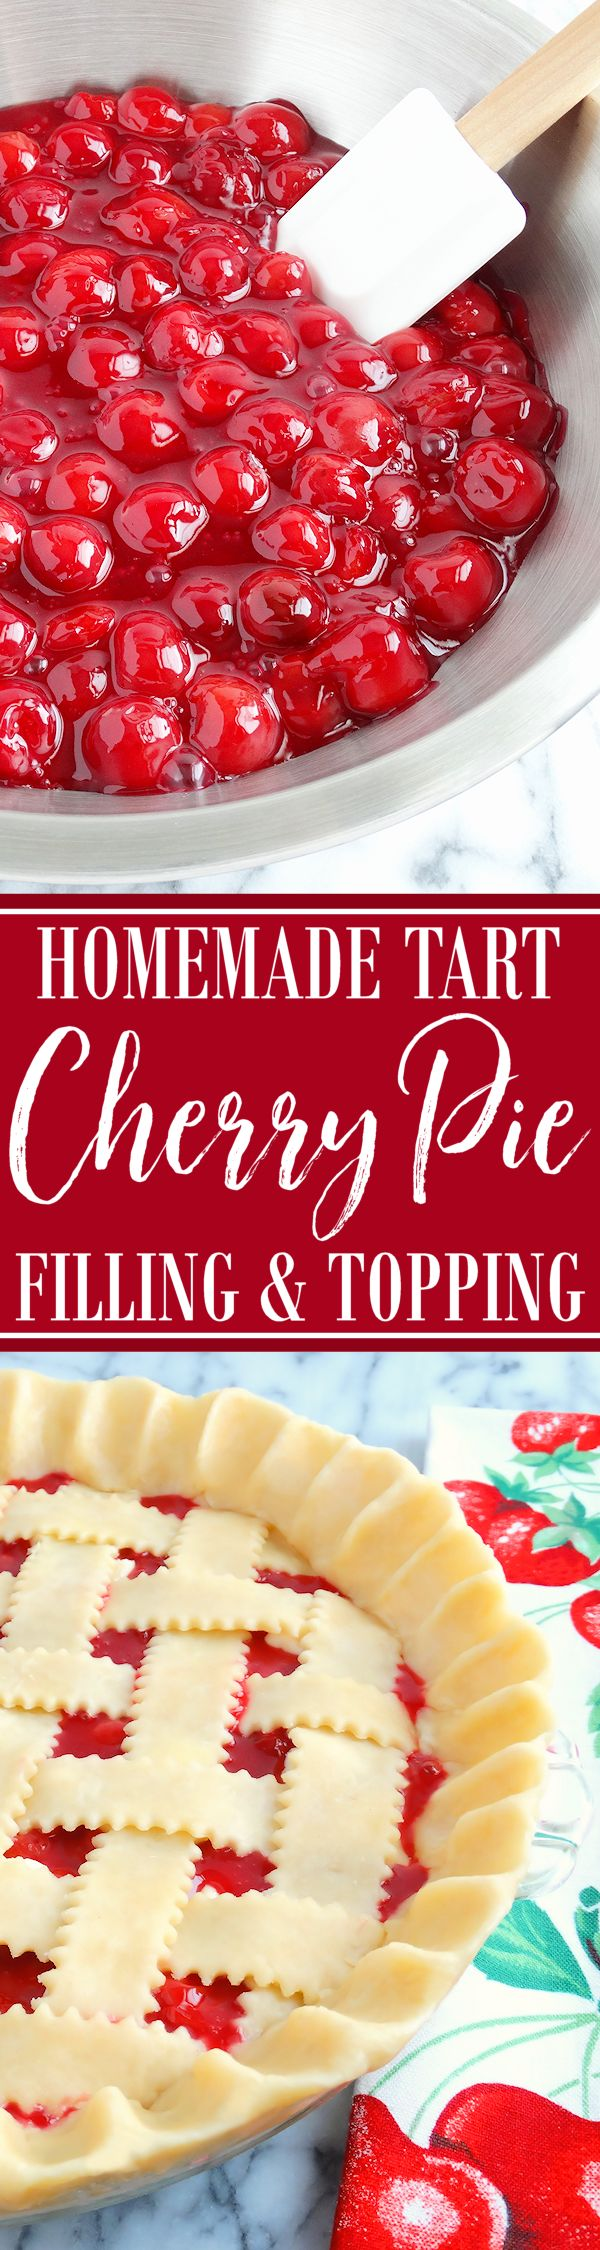 "Mom's Tart Cherry Pie Filling ~ A sumptuous homemade cherry pie filling made with plenty of fresh picked tart ""Meteor"" cherries (6 cups!) as well as just the right amount of sugar for sweetness and fresh cherry juice for tartness makes our cherry pie filling stand out from the pack. By using tapioca starch as a thickener, versus flour as in the original vintage recipe, or cornstarch, the fresh cherry flavor bursts through the filling instead of being overpowered resulting in a clear and…"